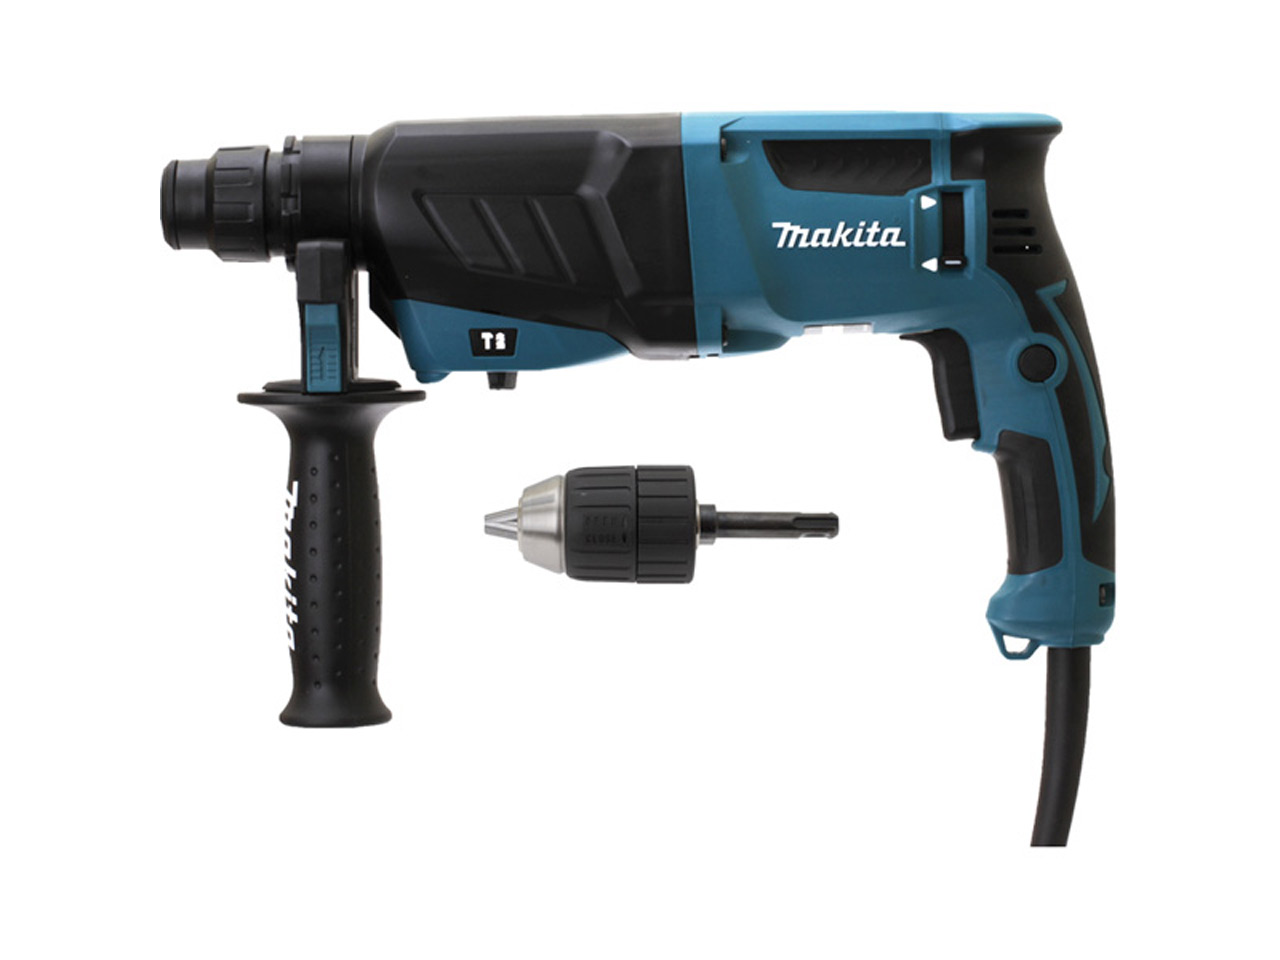 makita hr2630x7 1 110v 800w 3 function sds plus rotary hammer. Black Bedroom Furniture Sets. Home Design Ideas